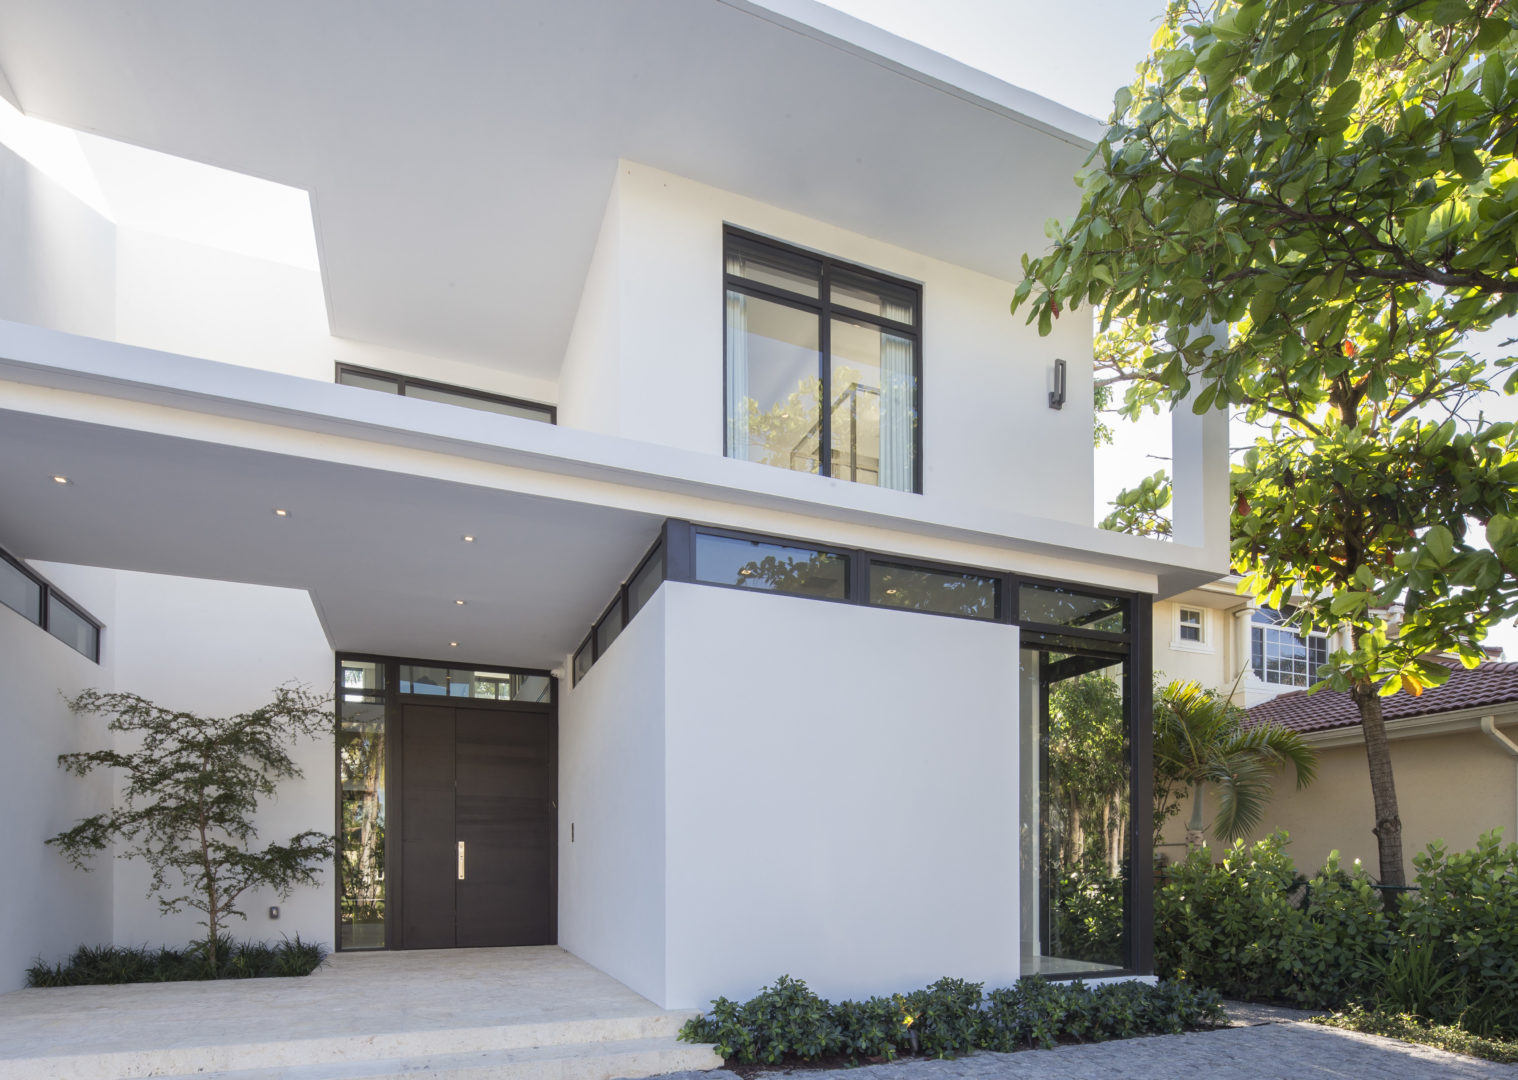 Golden Beach Residence High-end Builder Contractor Miami Modern Luxury Facade Garage Landscape Driveway Entry